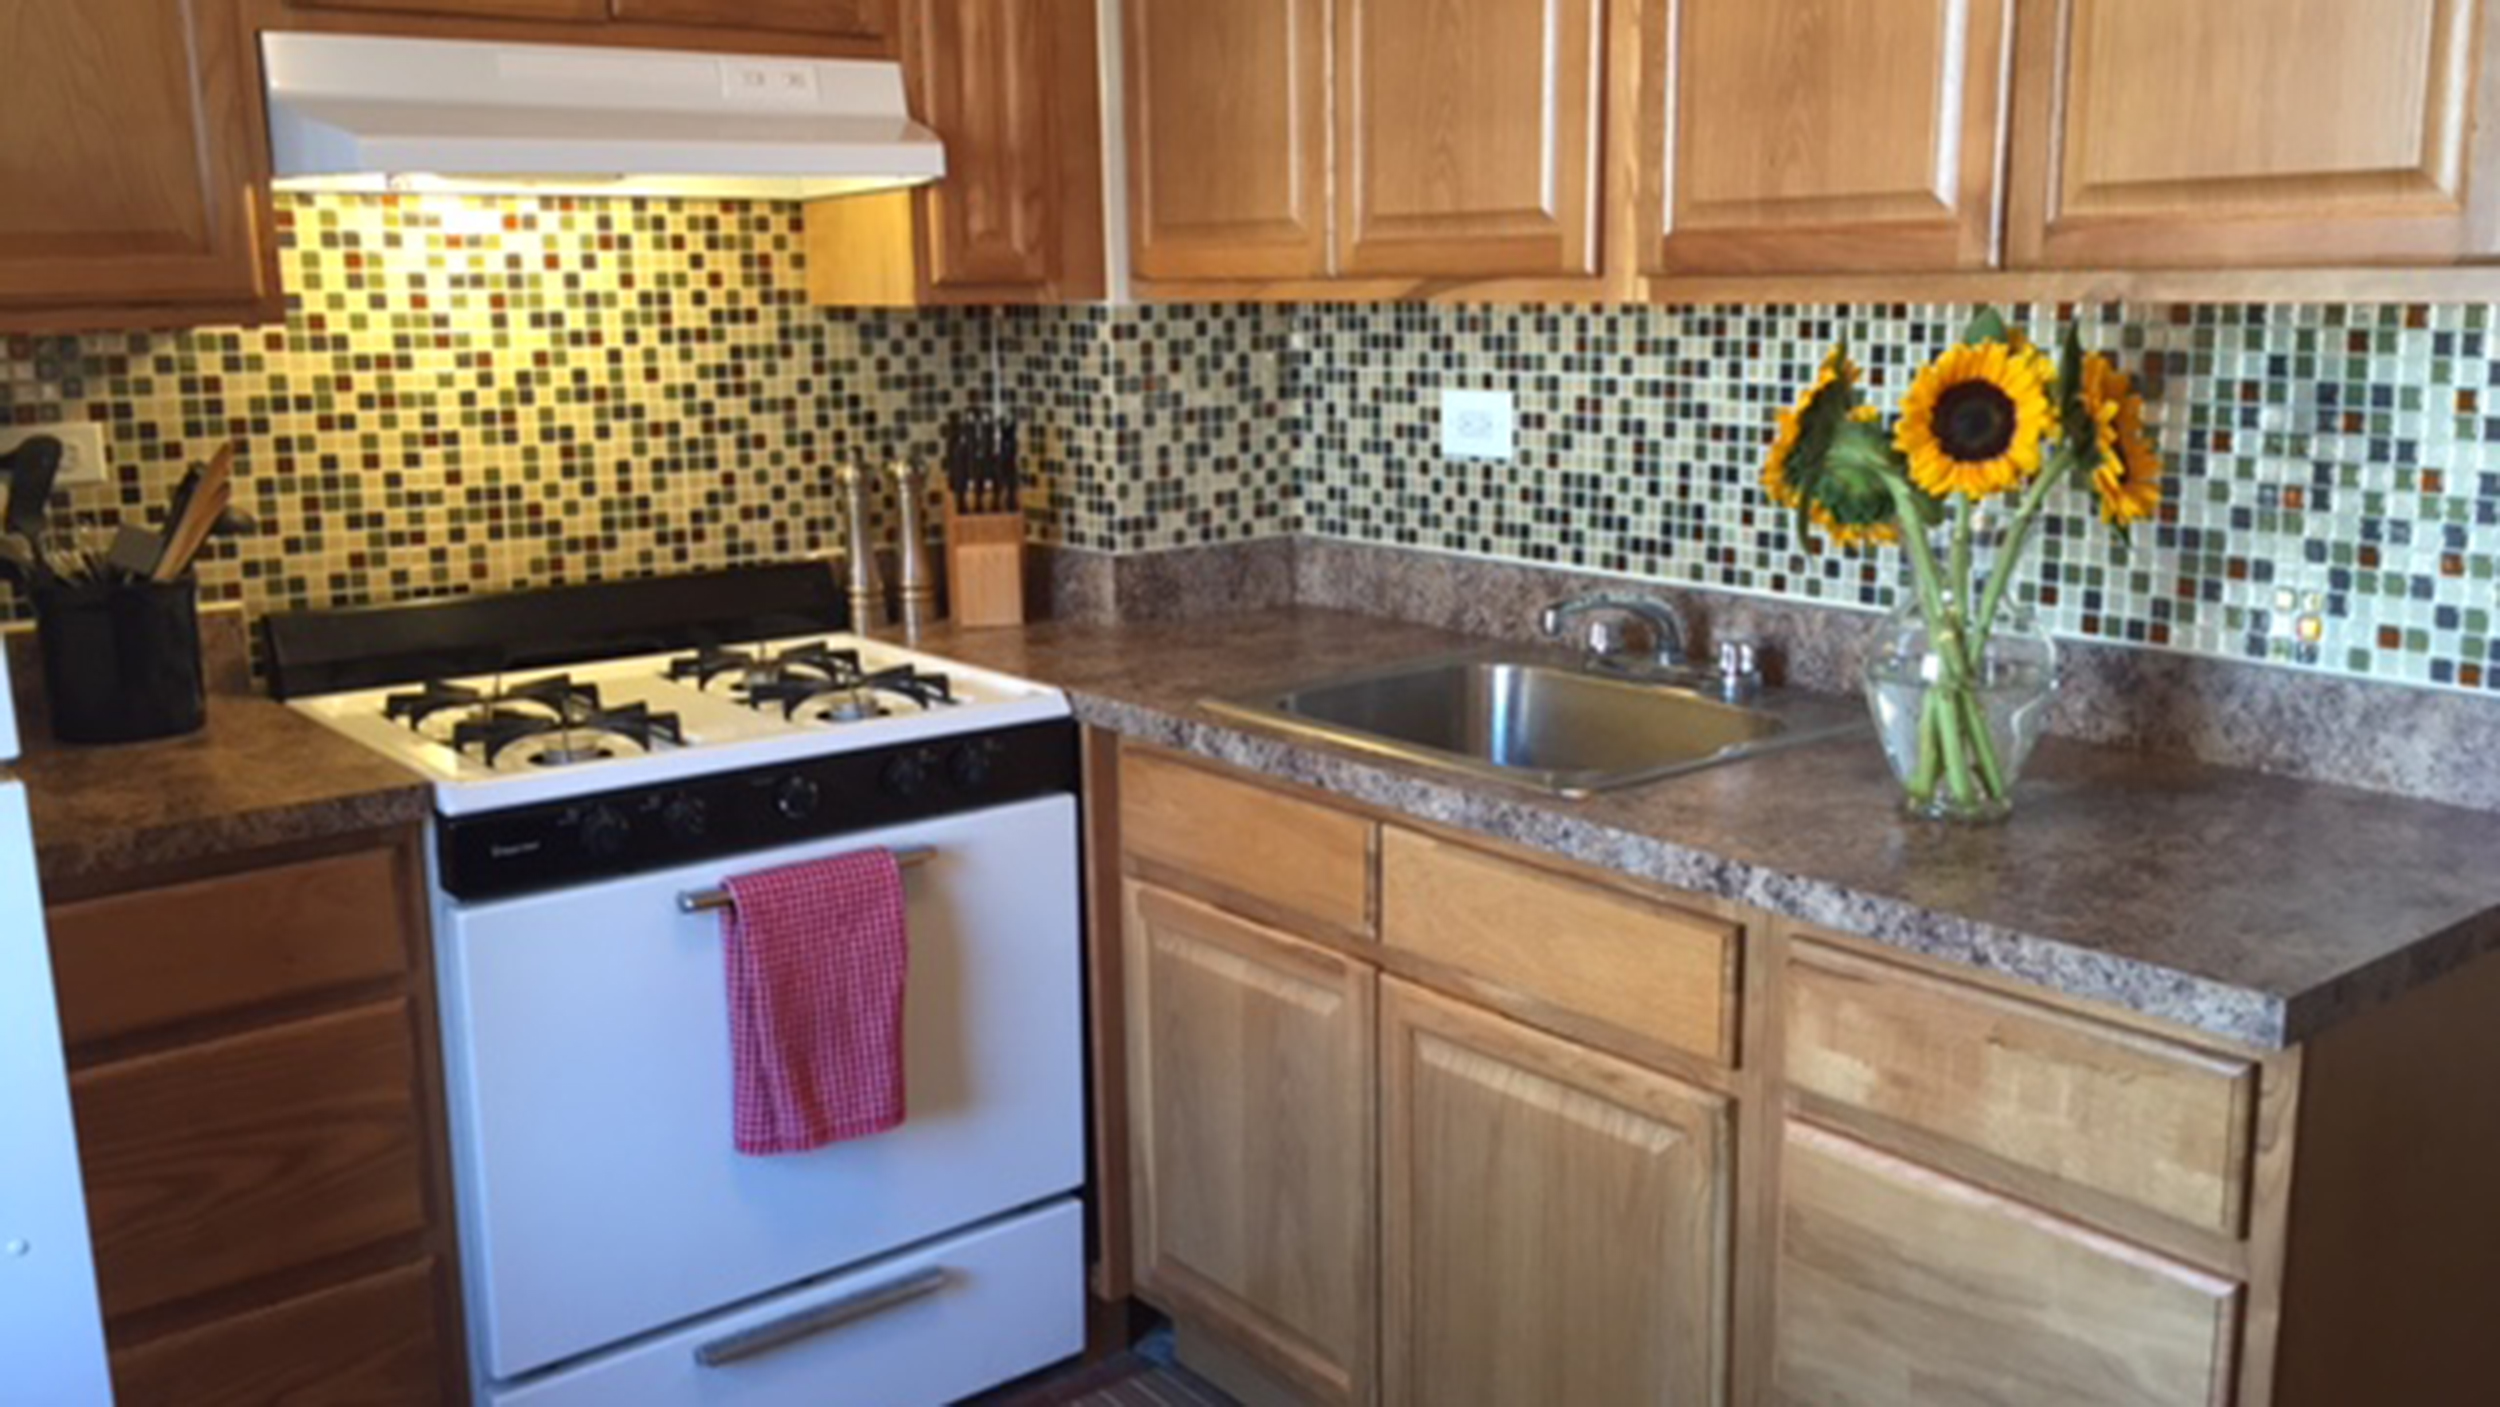 Plastic Backsplash Tiles Kitchen